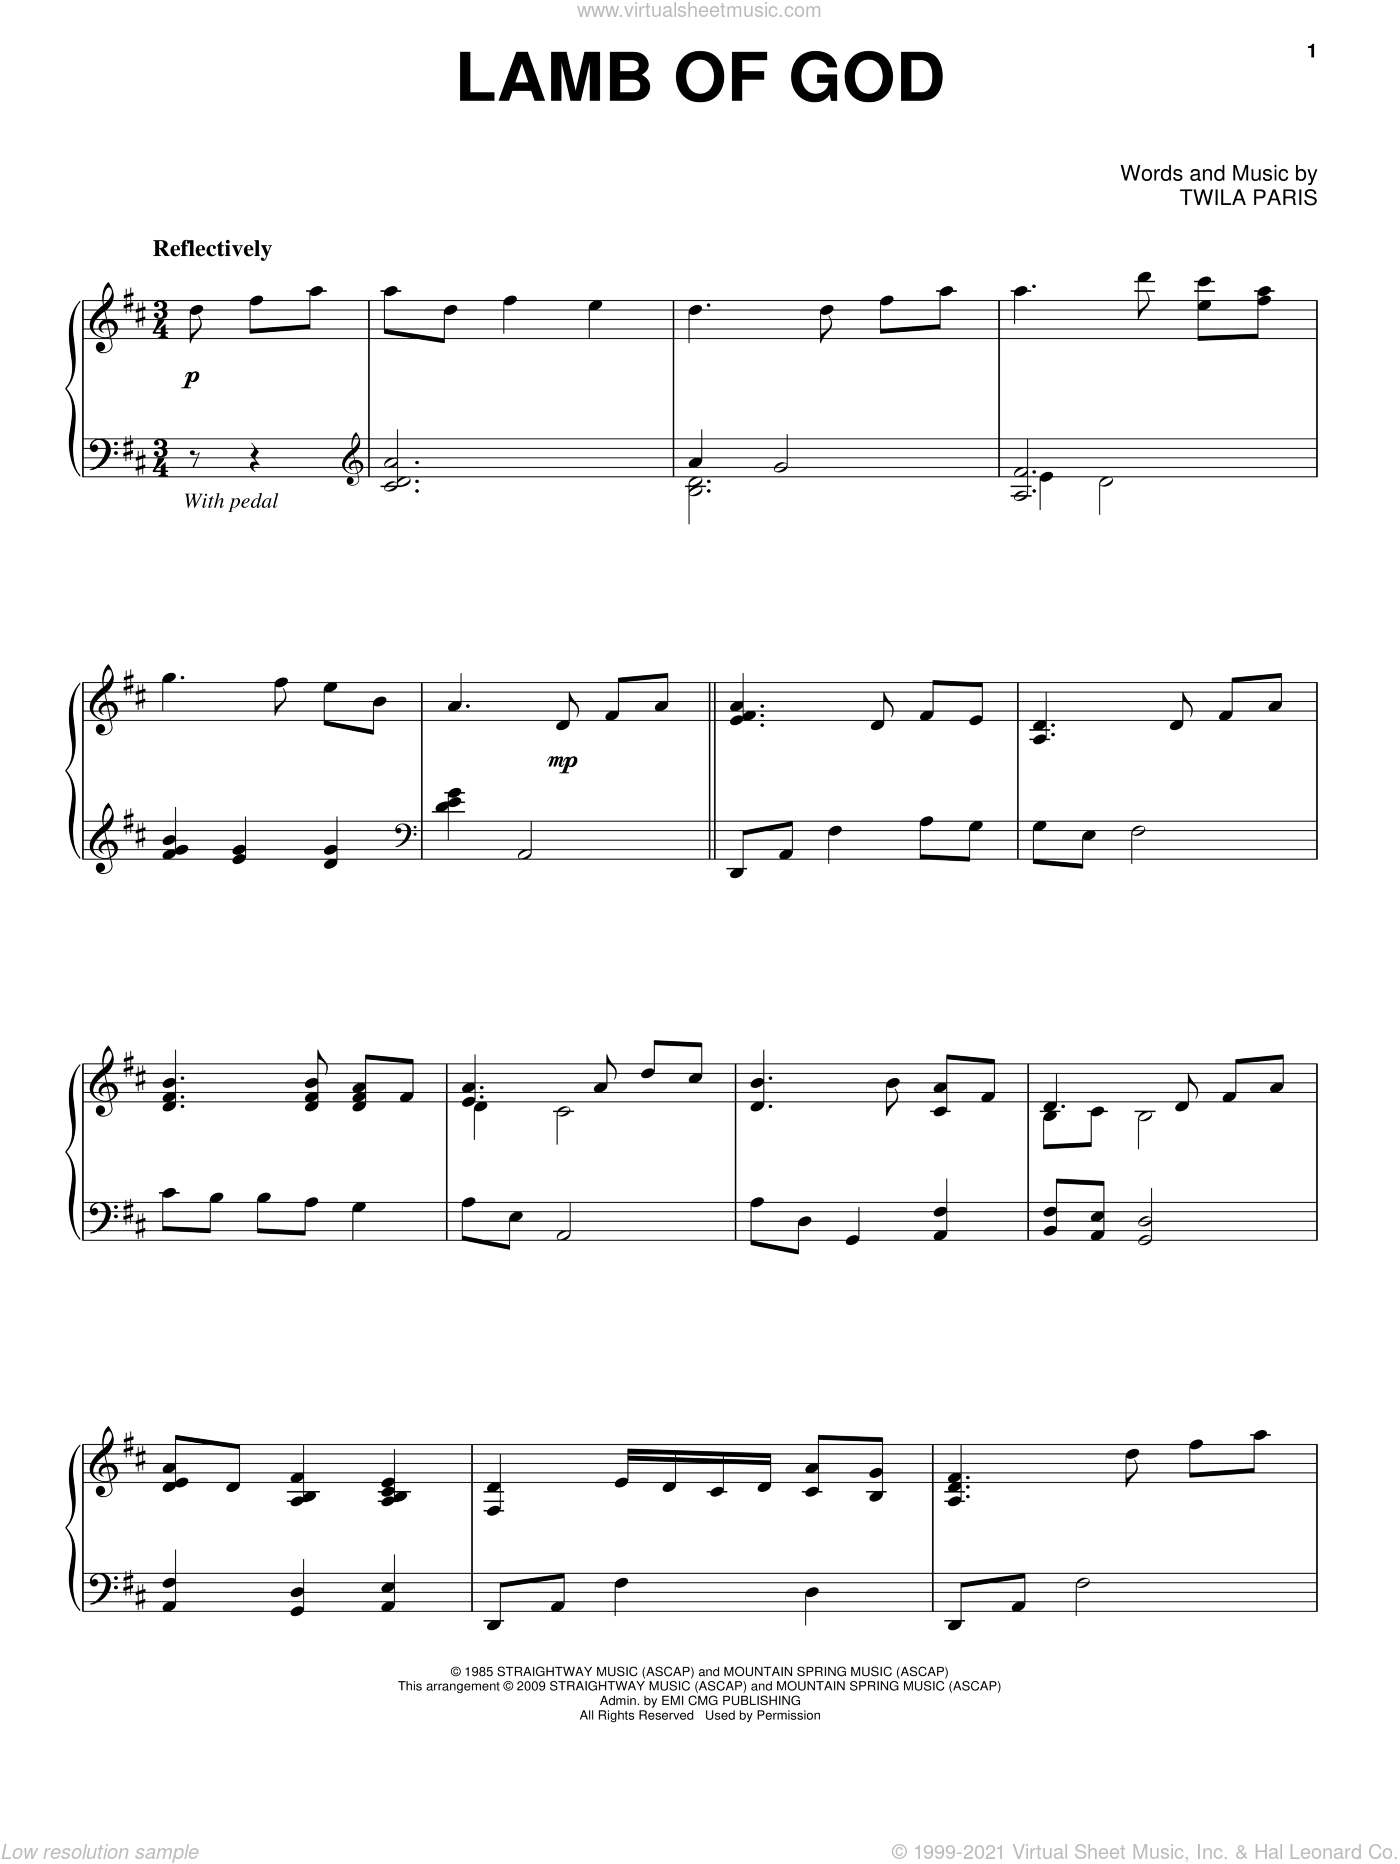 Lamb Of God sheet music for piano solo by Twila Paris, intermediate skill level